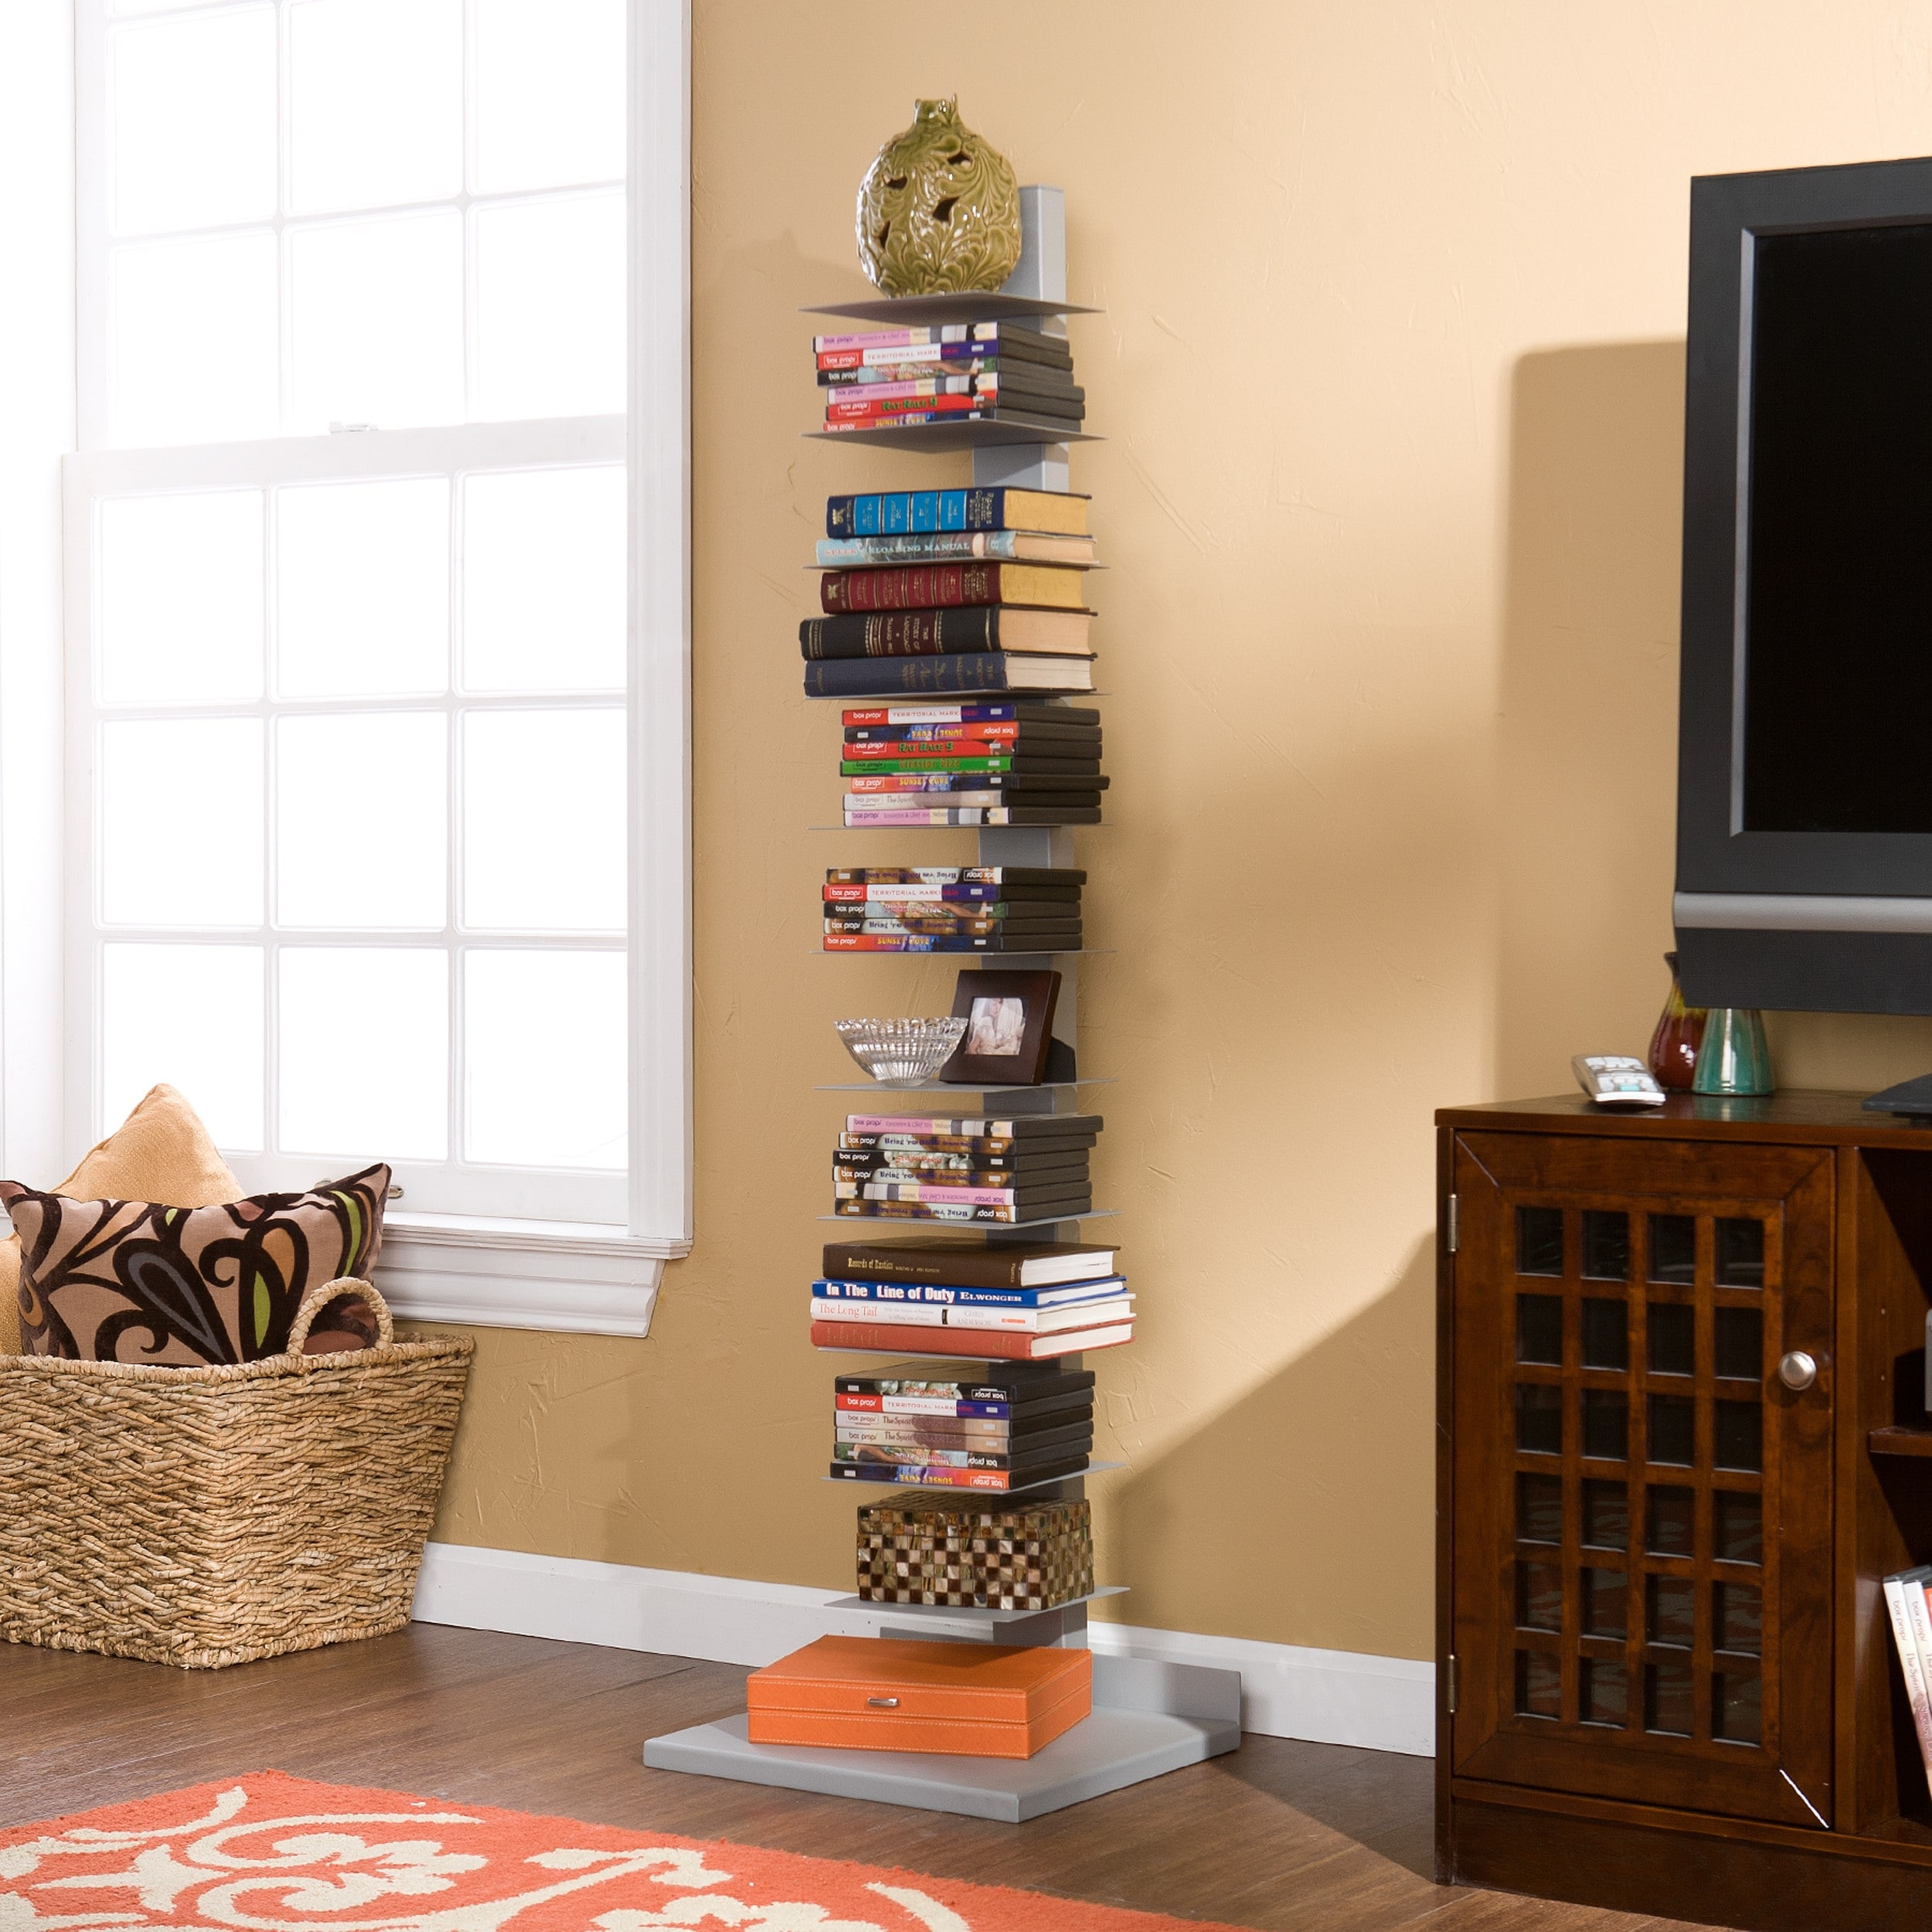 quartzy says a you organize system spine bookshelf img what how bookcase about your style and to